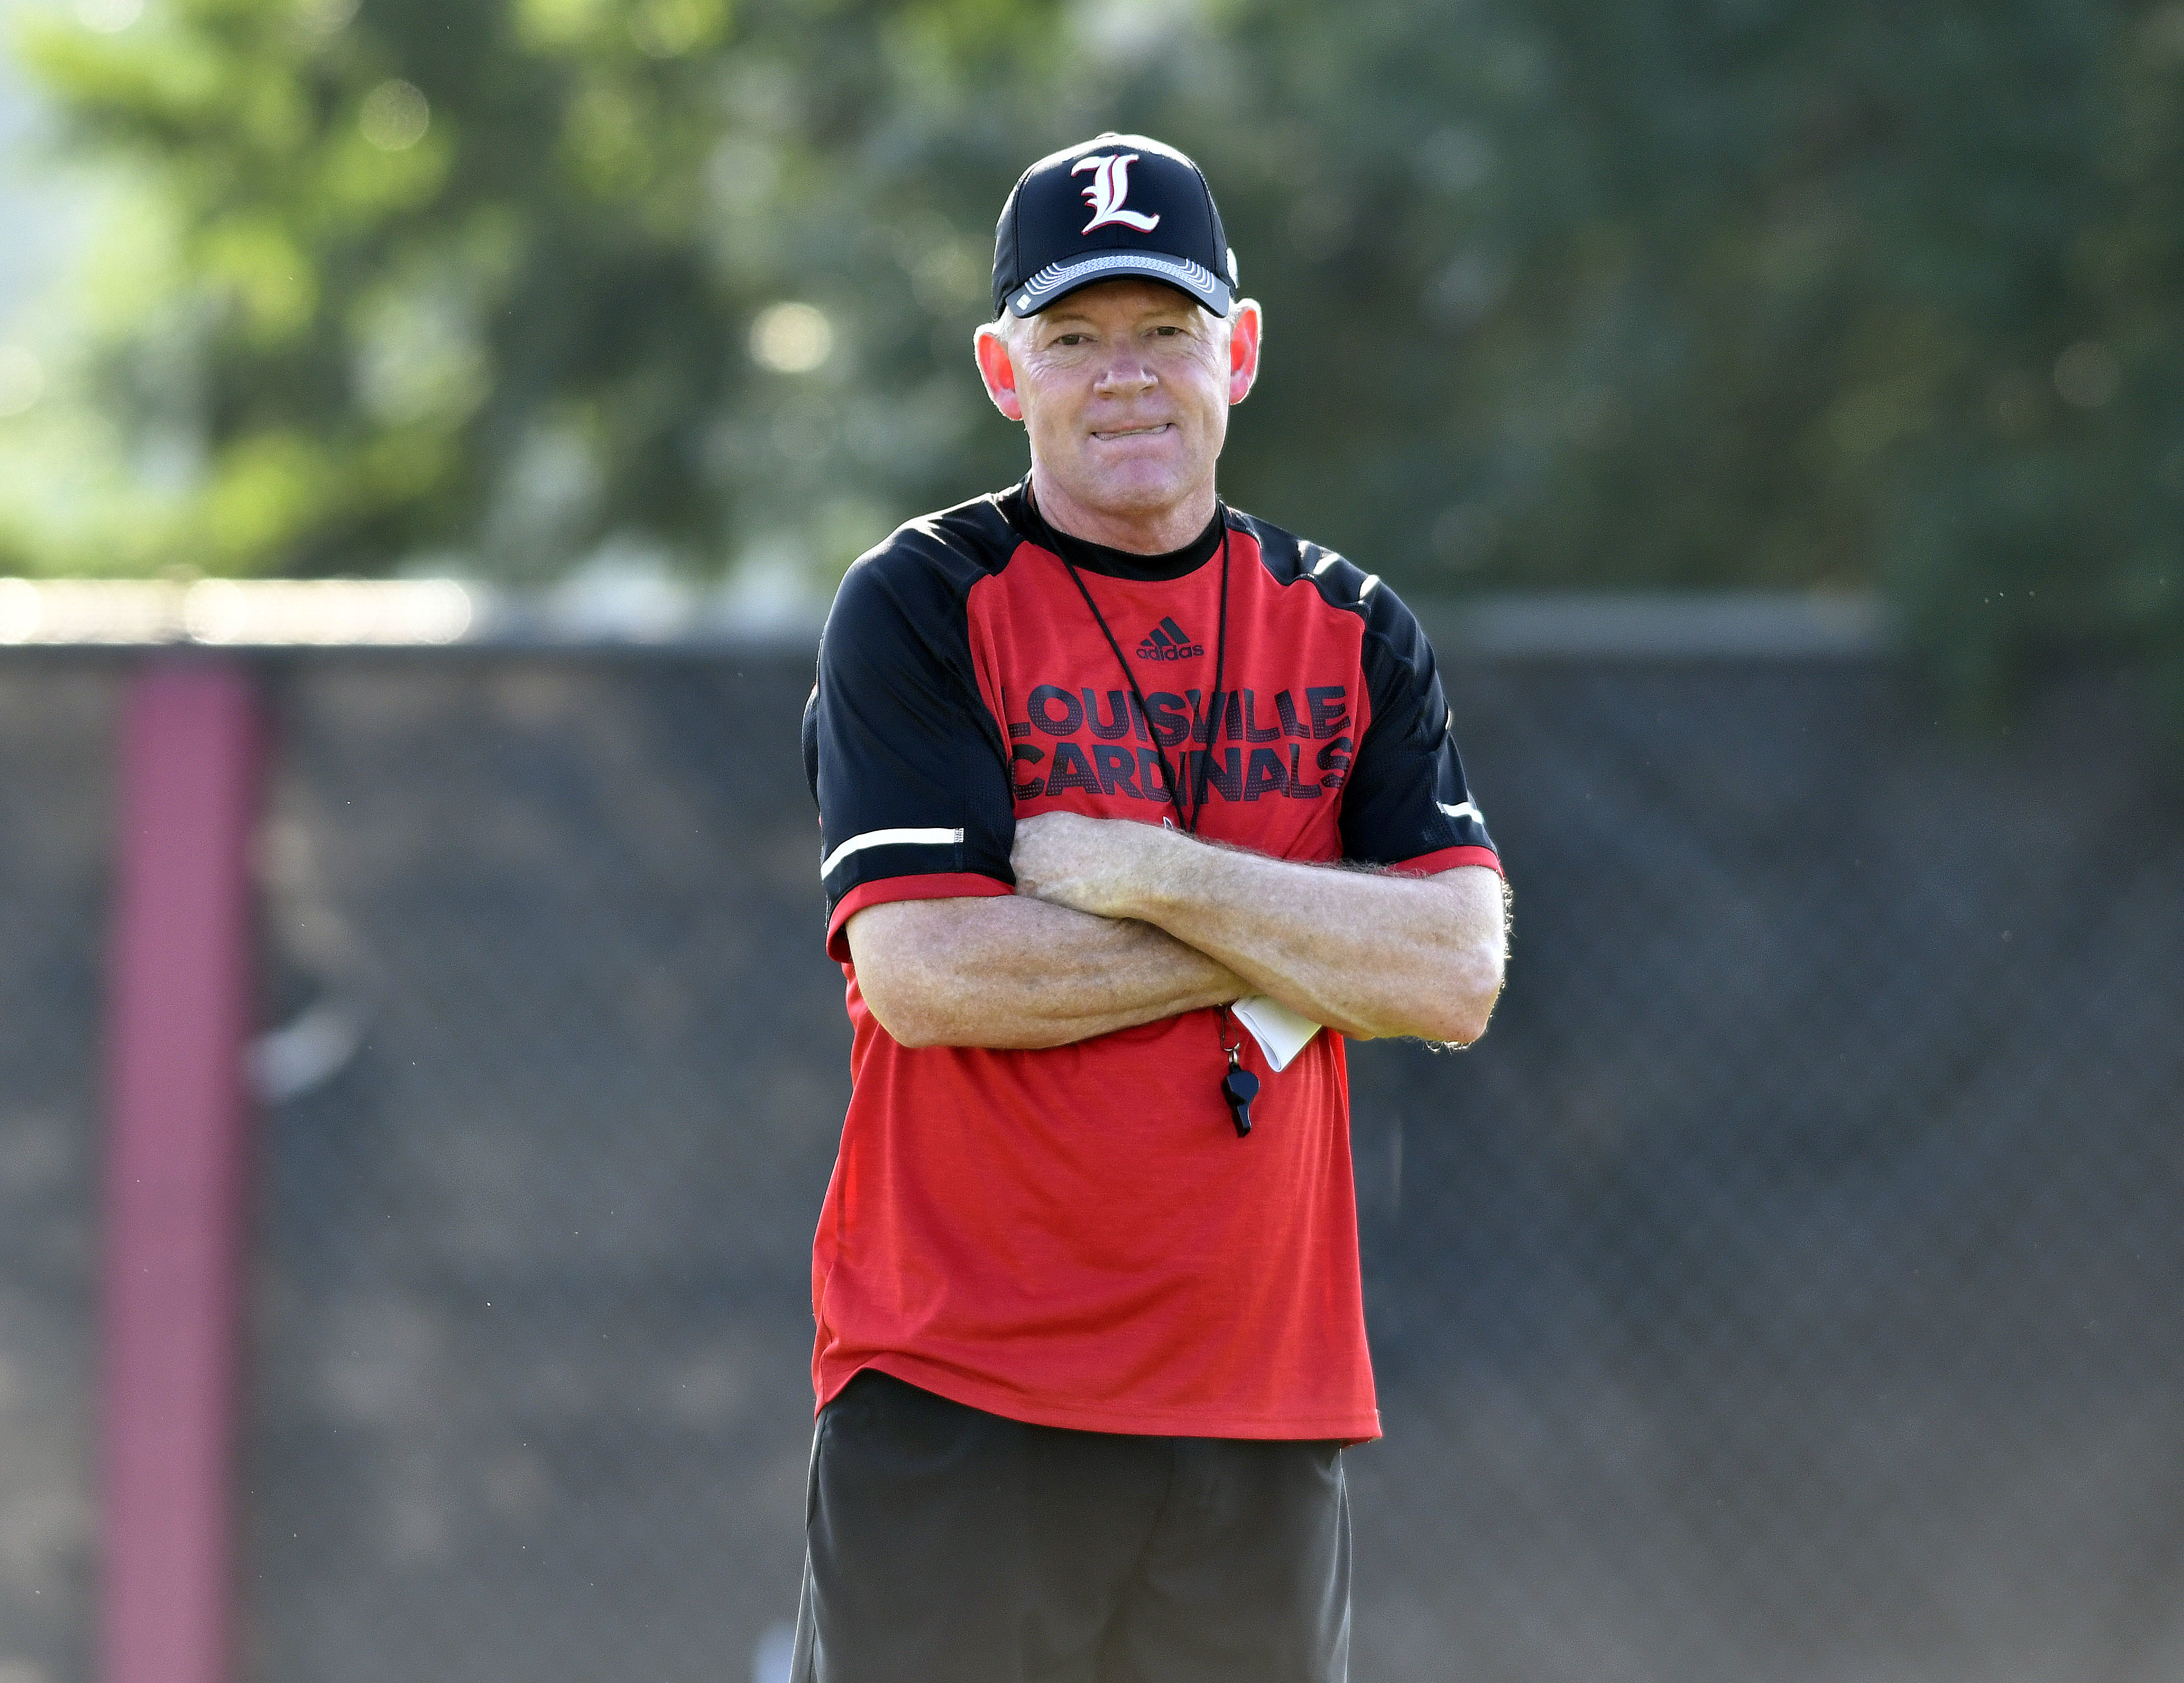 FILE - In this Aug. 5, 2016, file photo, Louisville coach Bobby Petrino looks on as his team goes through workouts during NCAA college football practice in Louisville Ky. Four and a half years after being fired by Long at Arkansas as a pariah, Petrino is